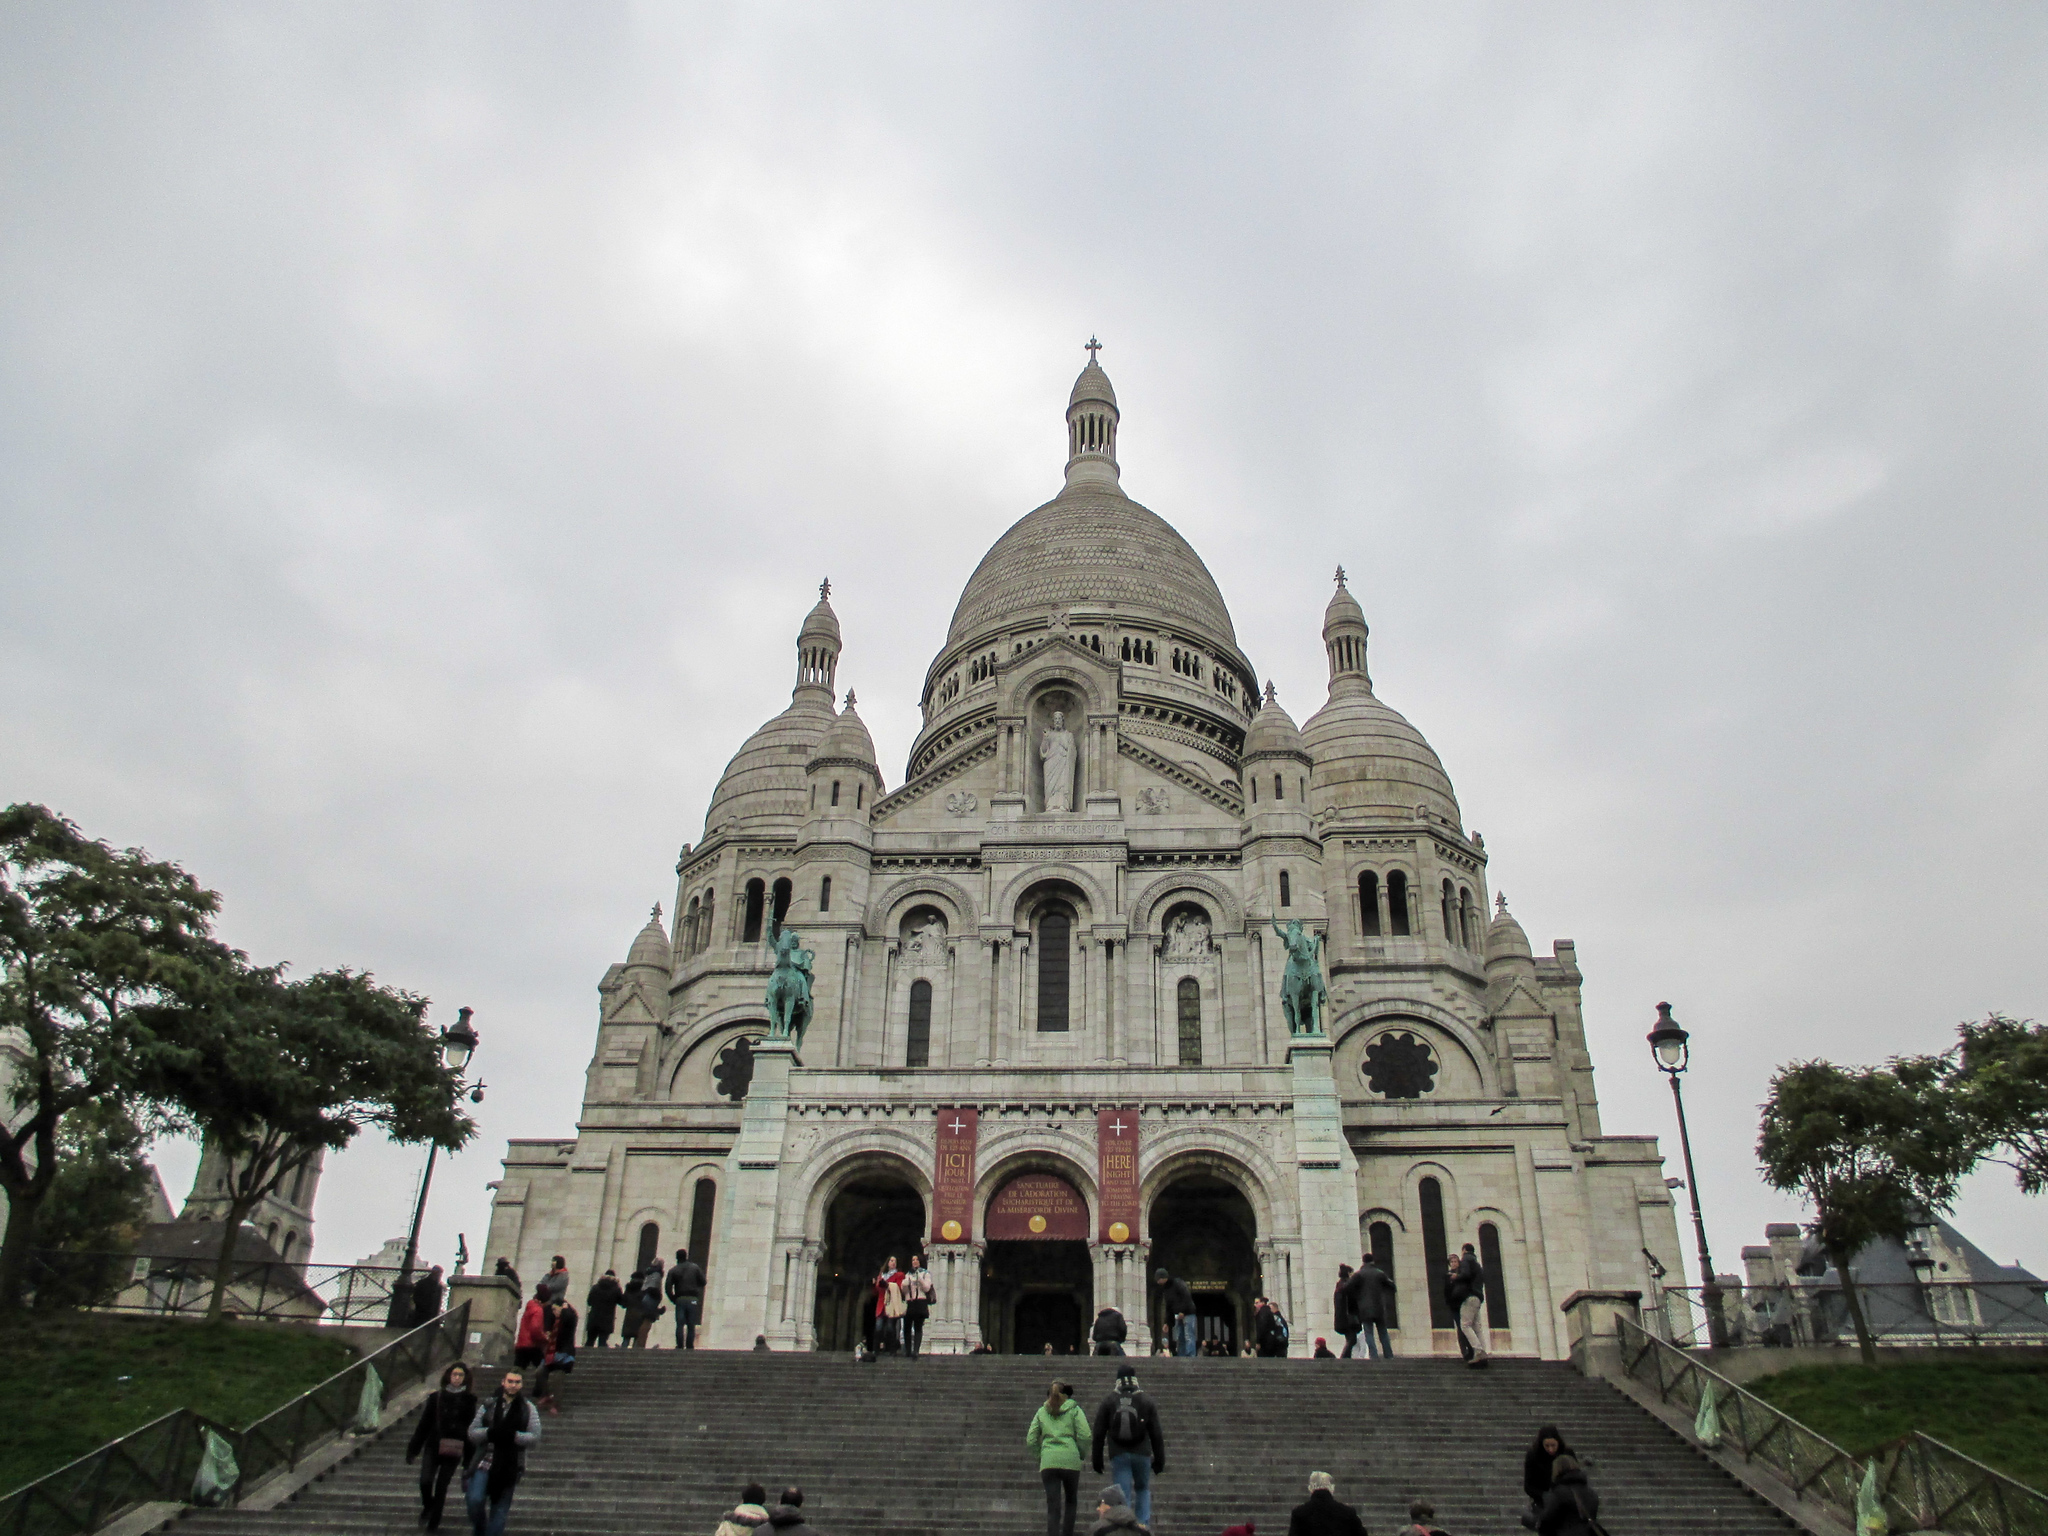 montmartre is the Best area to stay in paris for the first time